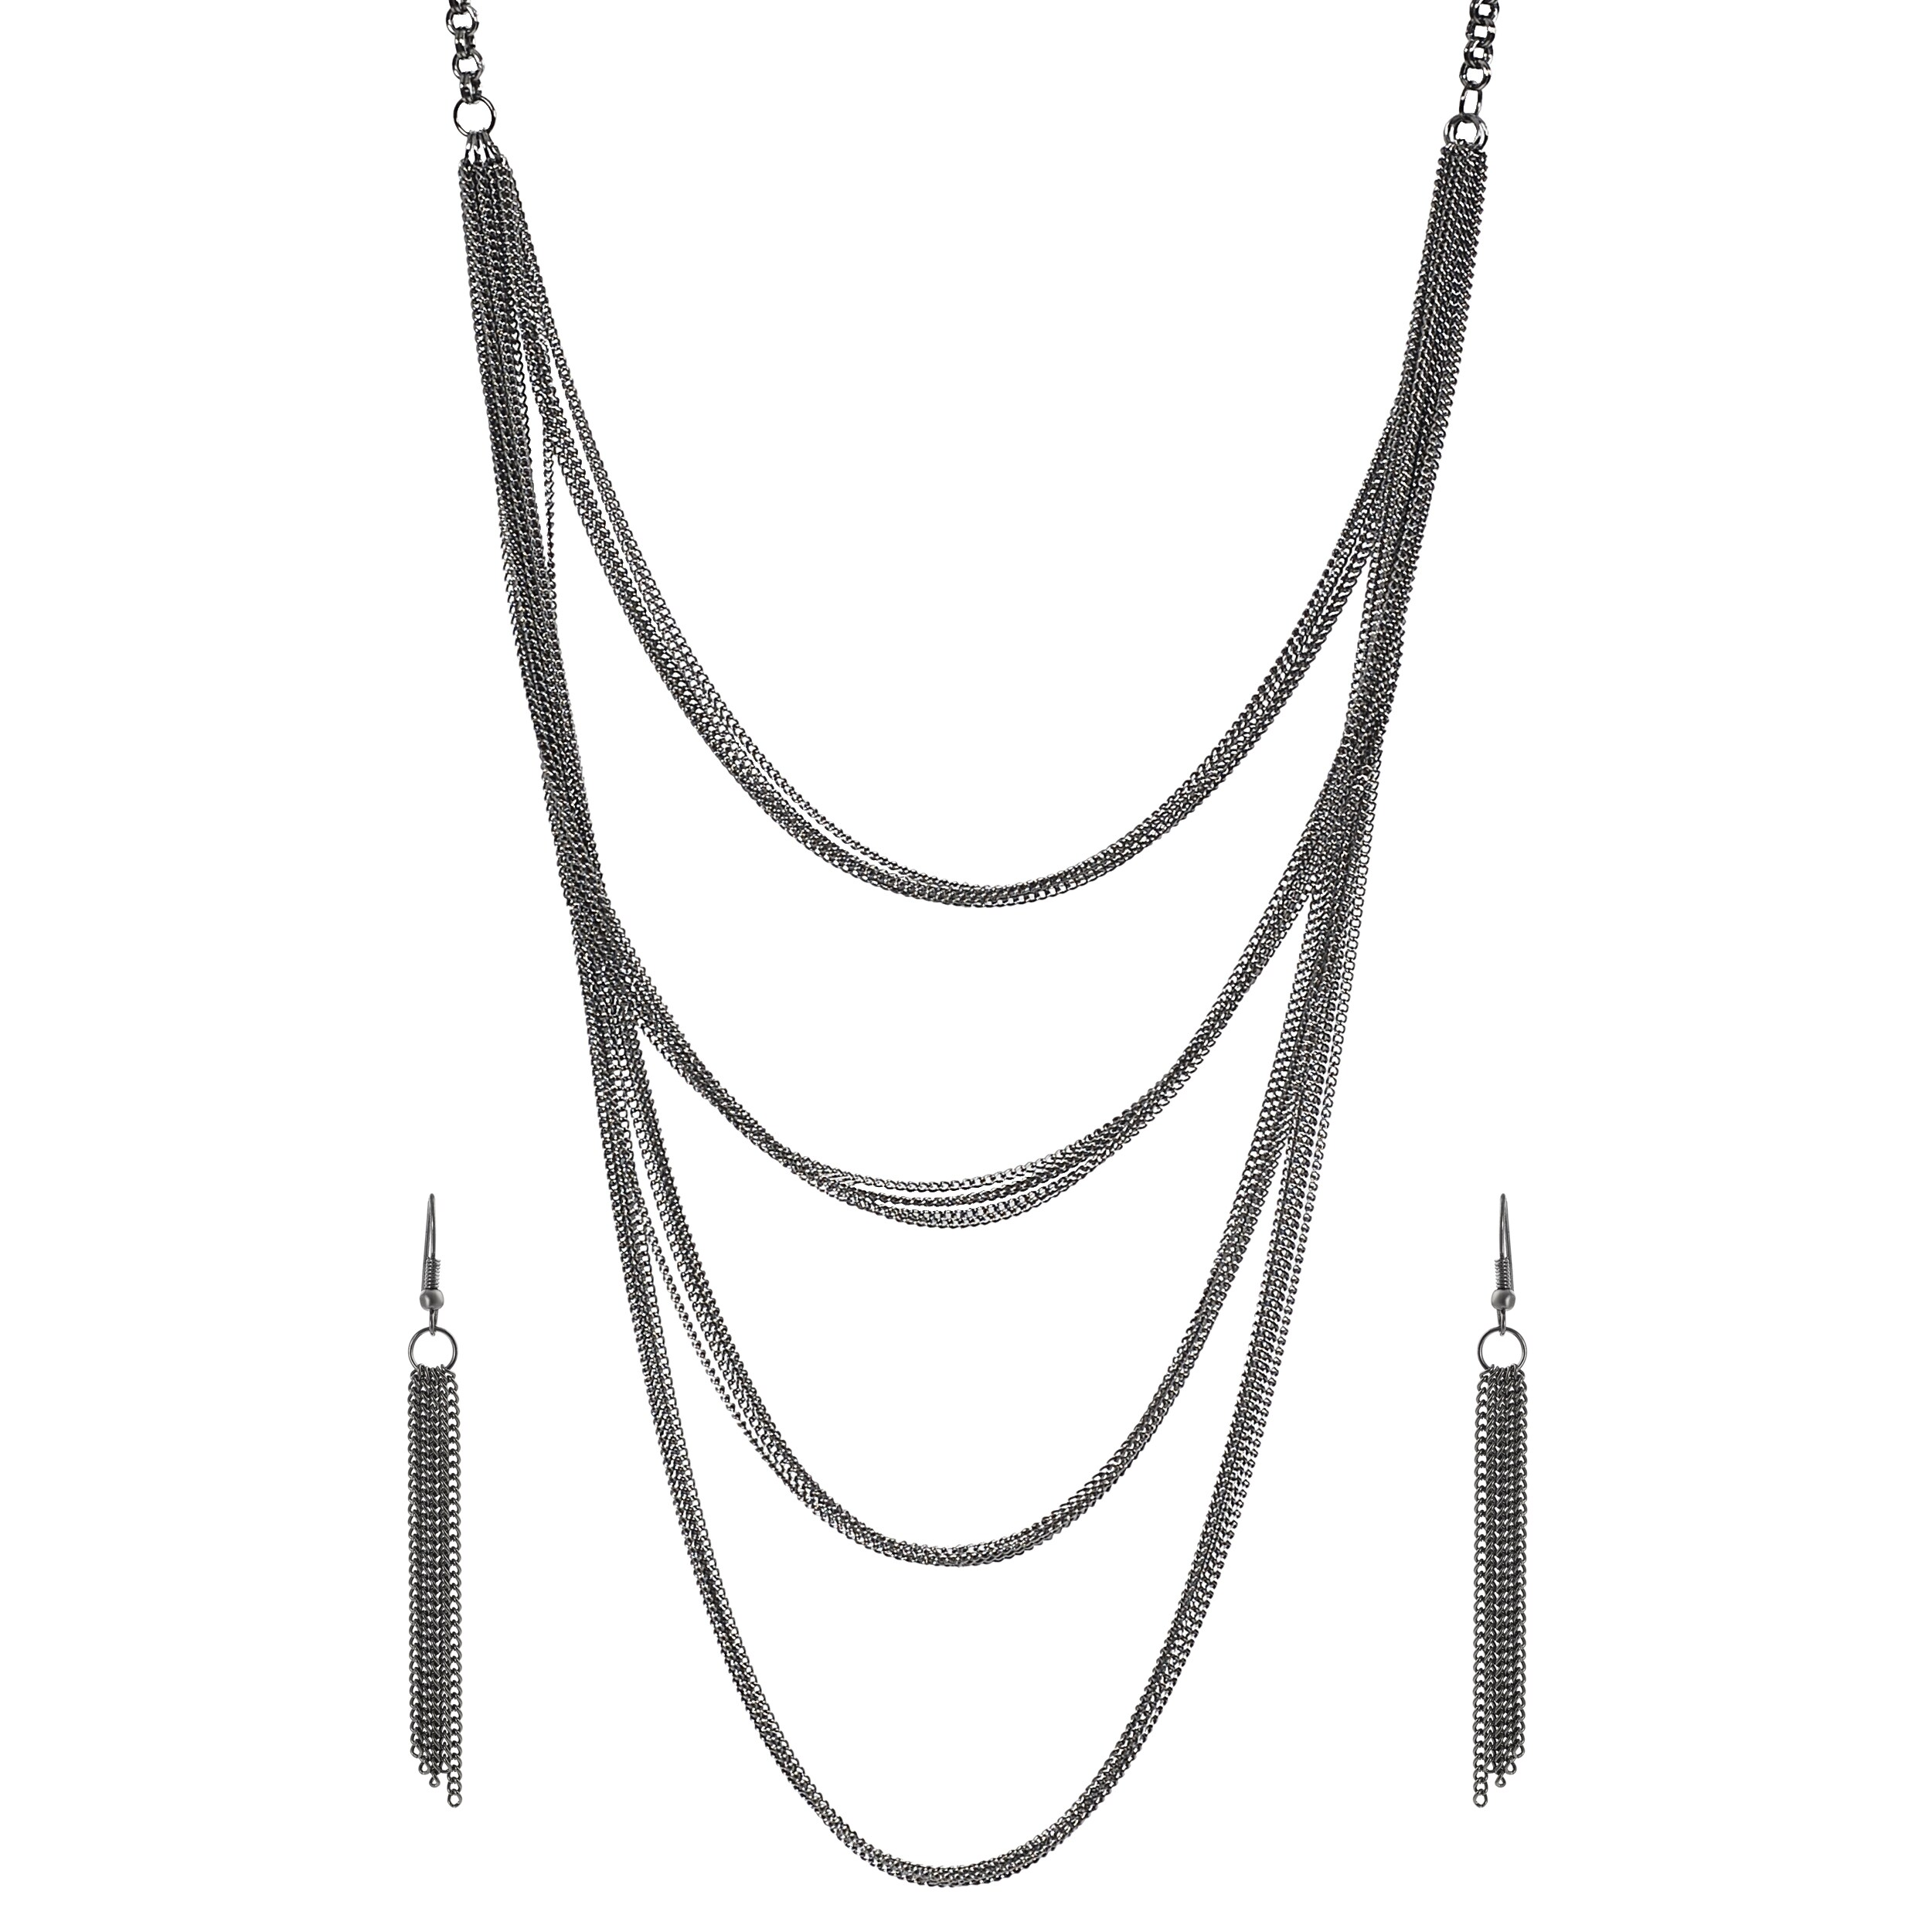 Journee Collection Rhodium-plate Base Chain Mail Necklace Earring Set - Thumbnail 0